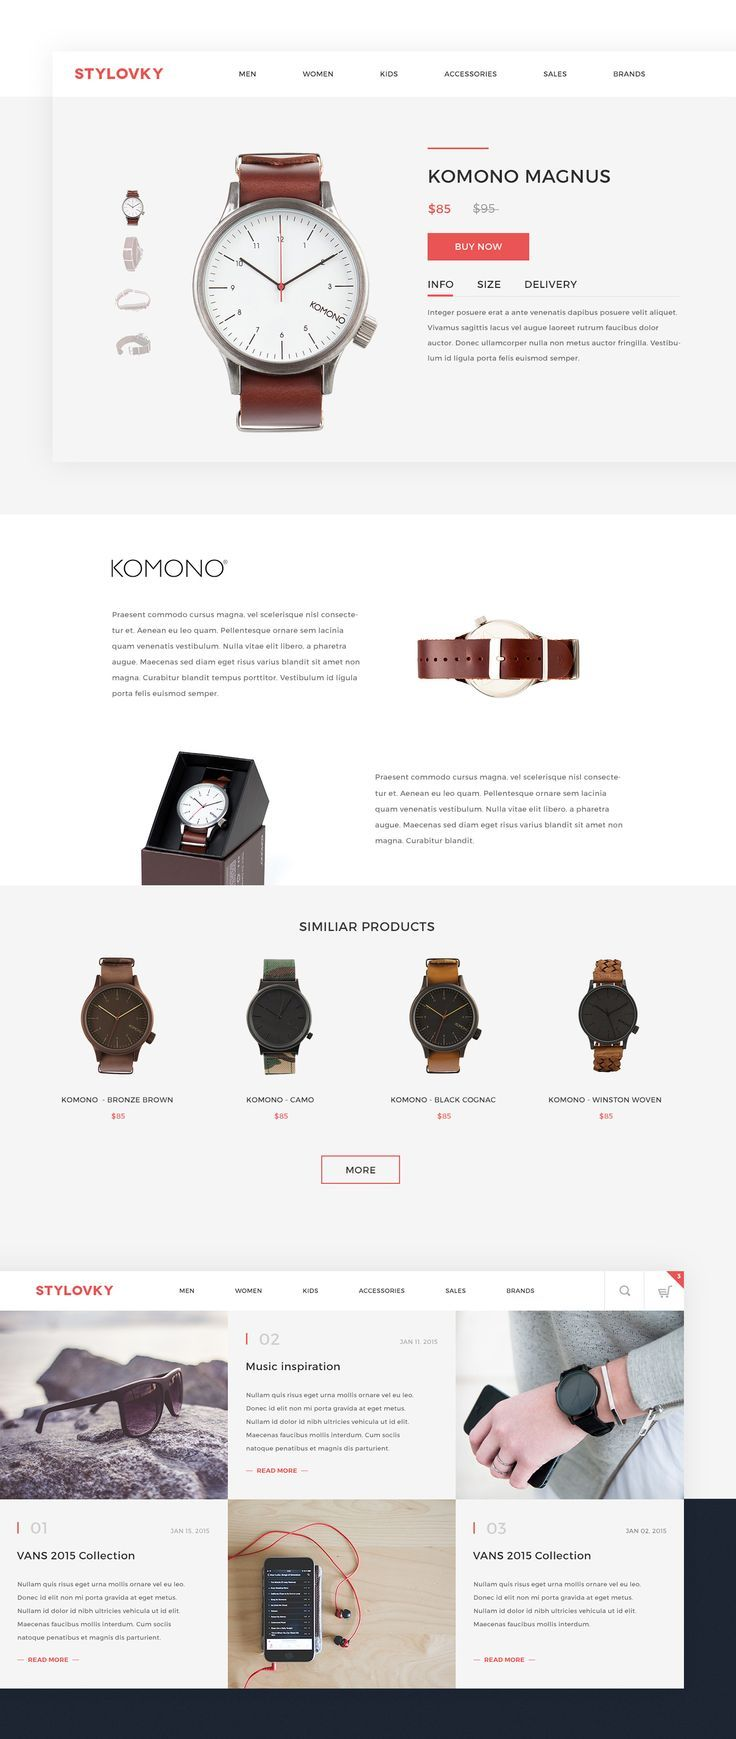 Web Design: 26 Modern & Trendy Examples | From up North